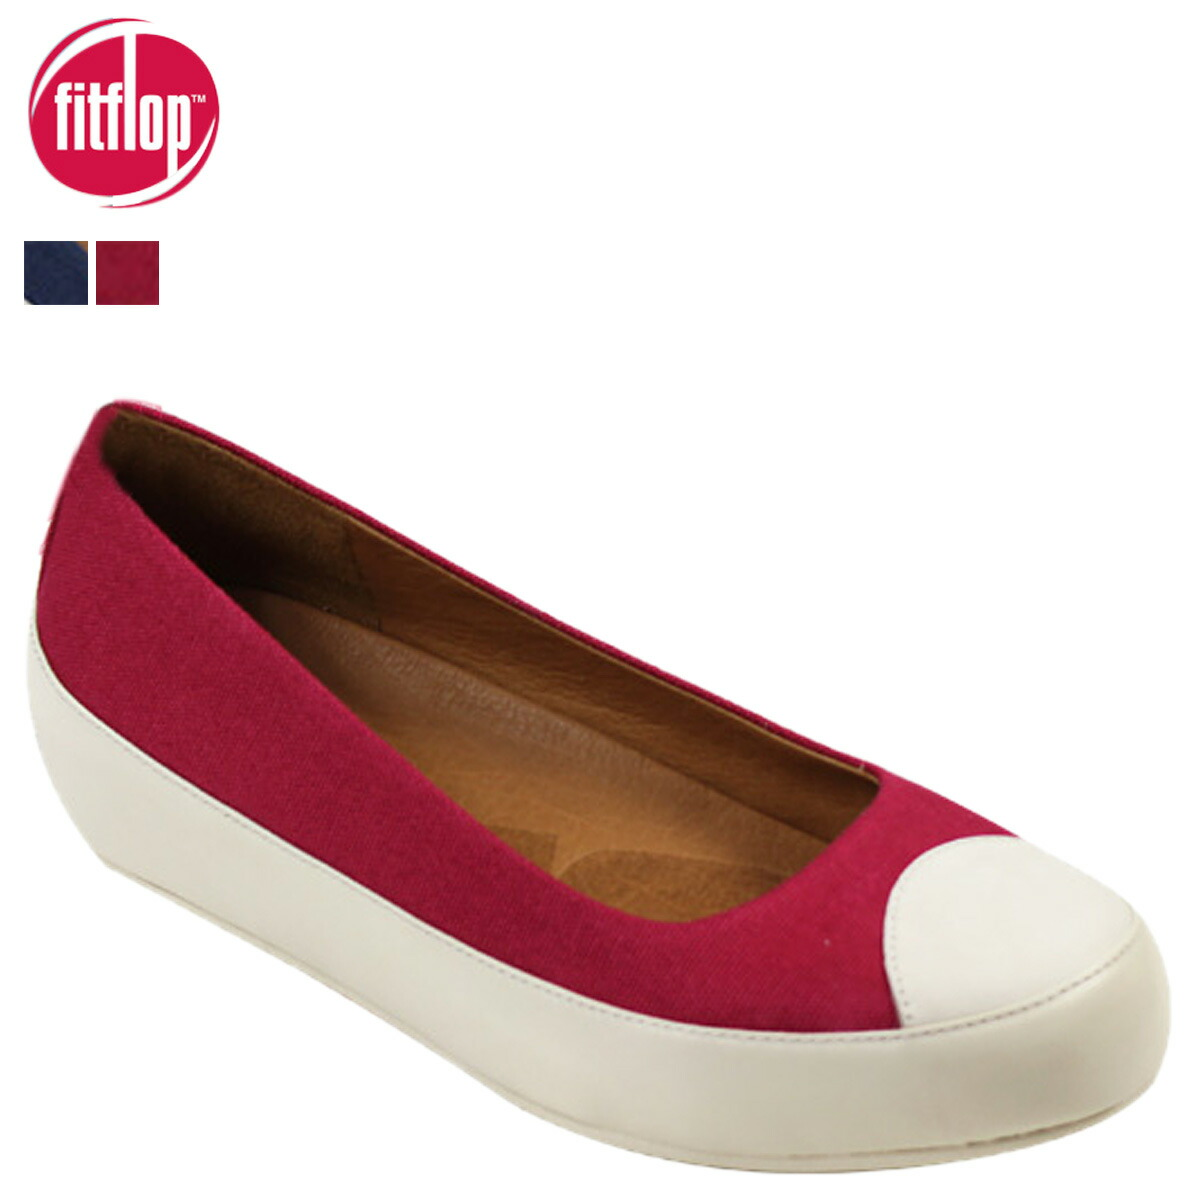 fitflop due canvas ????